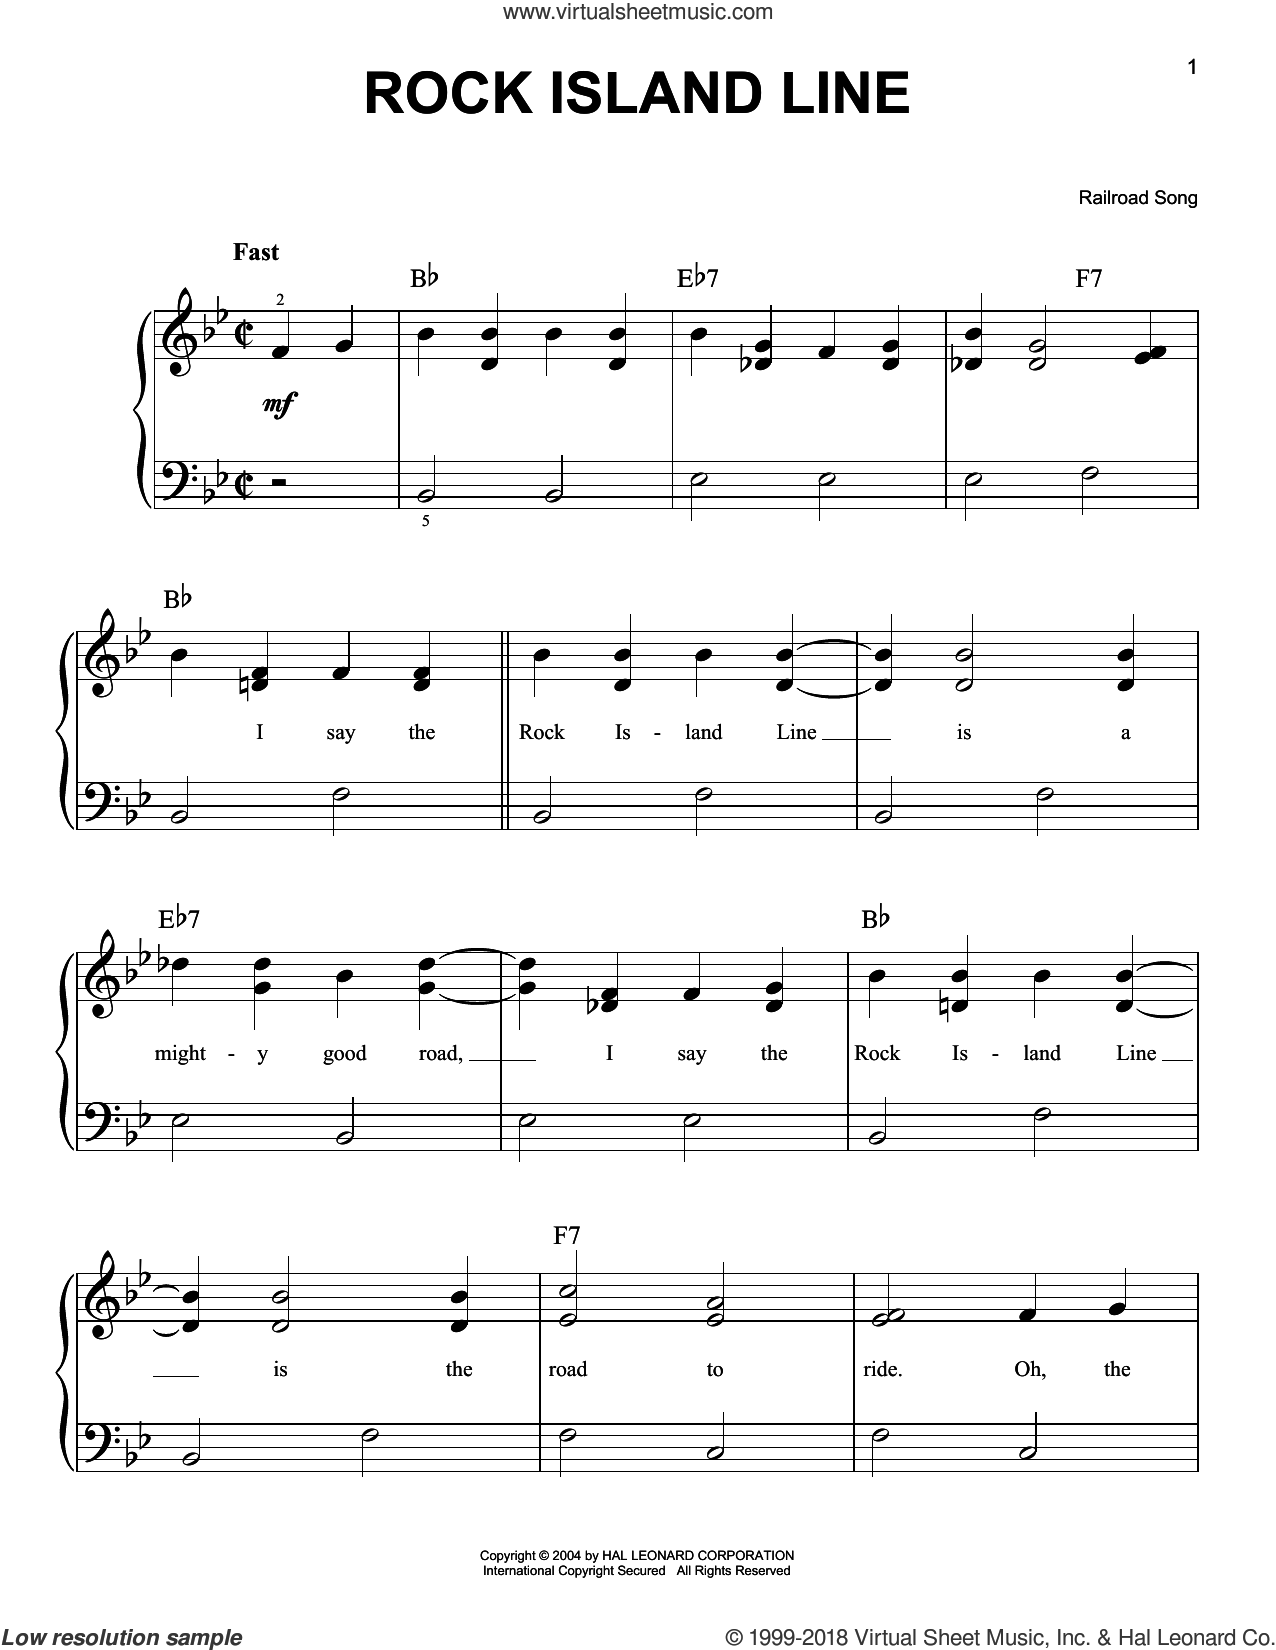 Rock Island Line sheet music for piano solo, easy skill level